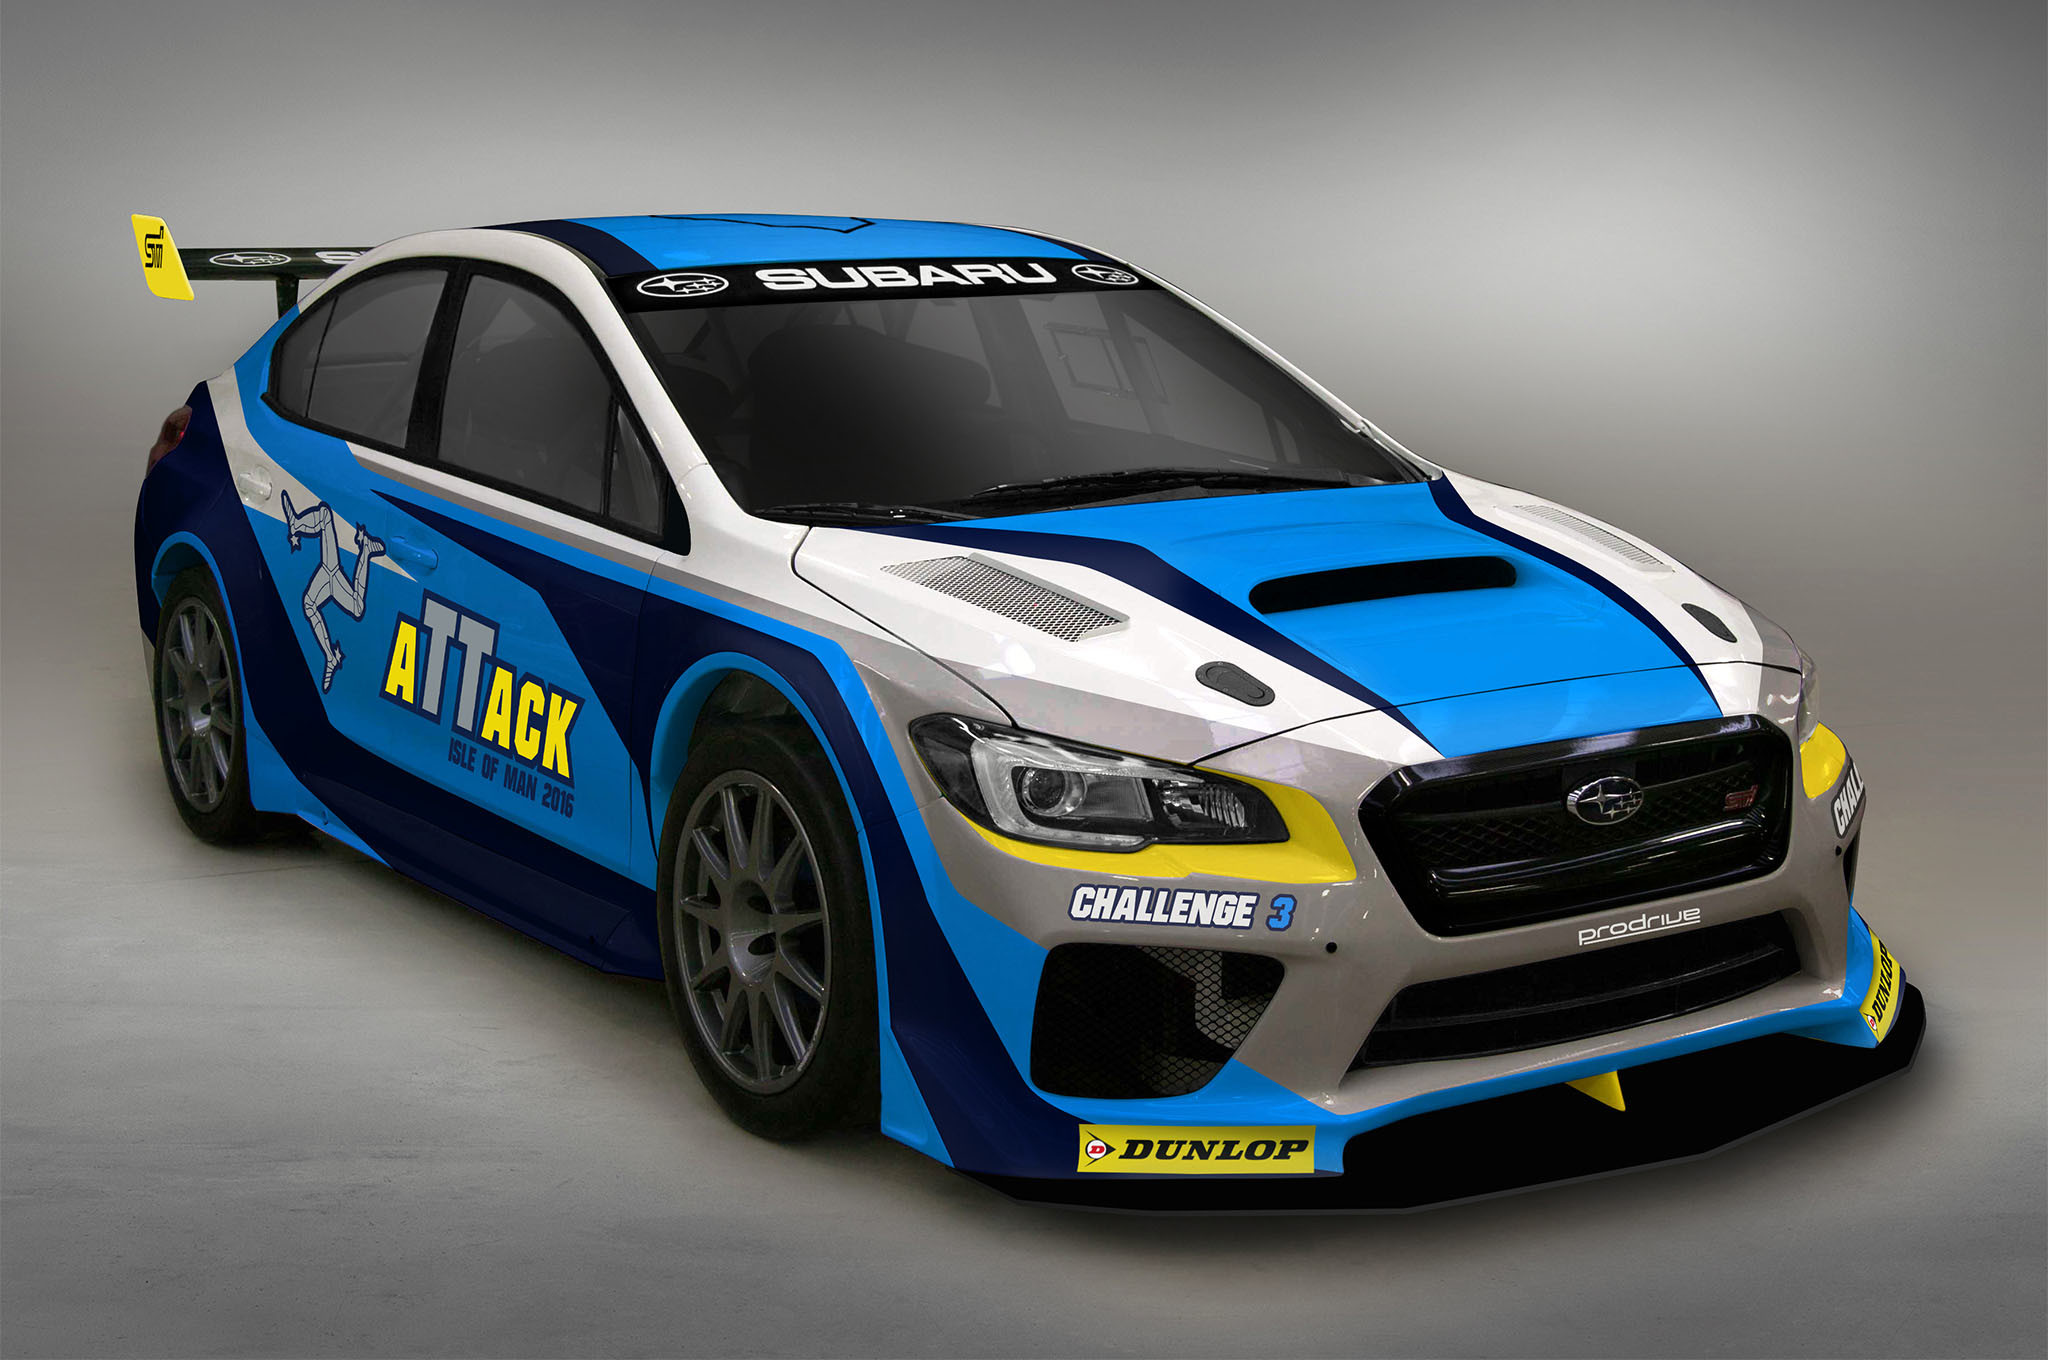 Image for 2016 Subaru WRX STI Race Car Wallpaper